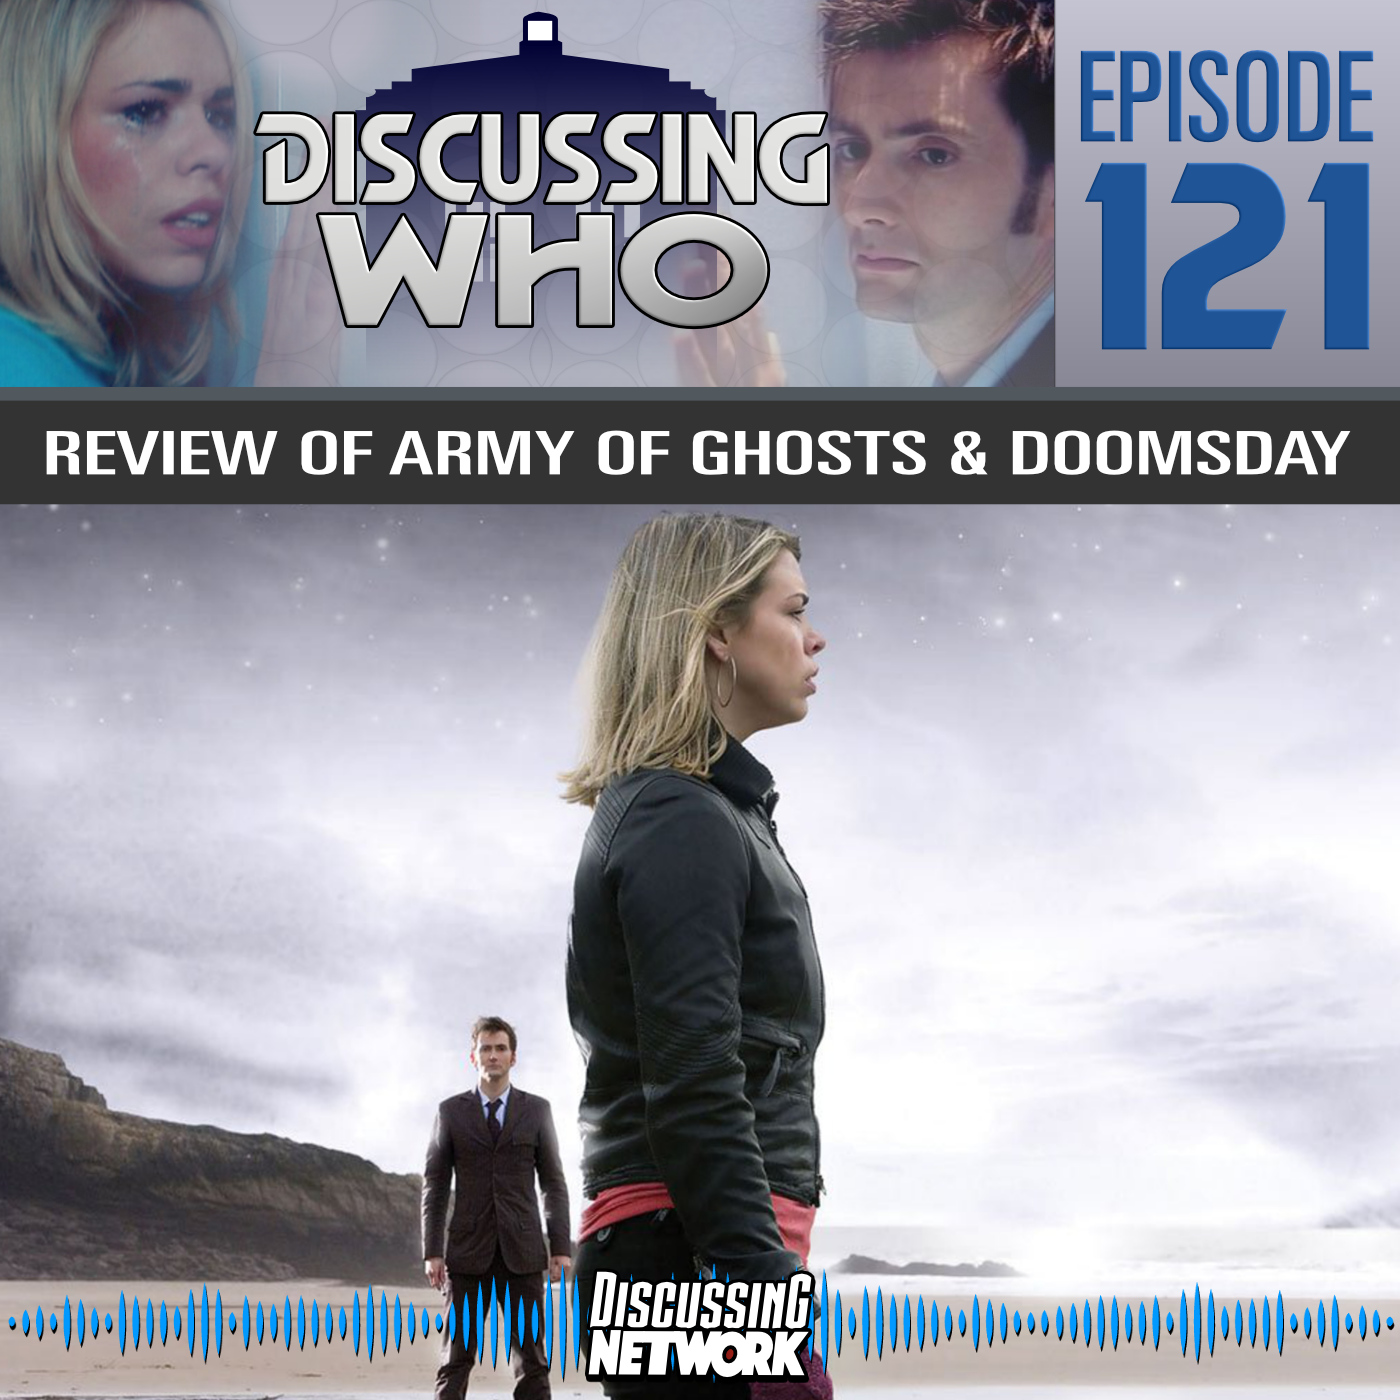 Review of Army of Ghosts and Doomsday